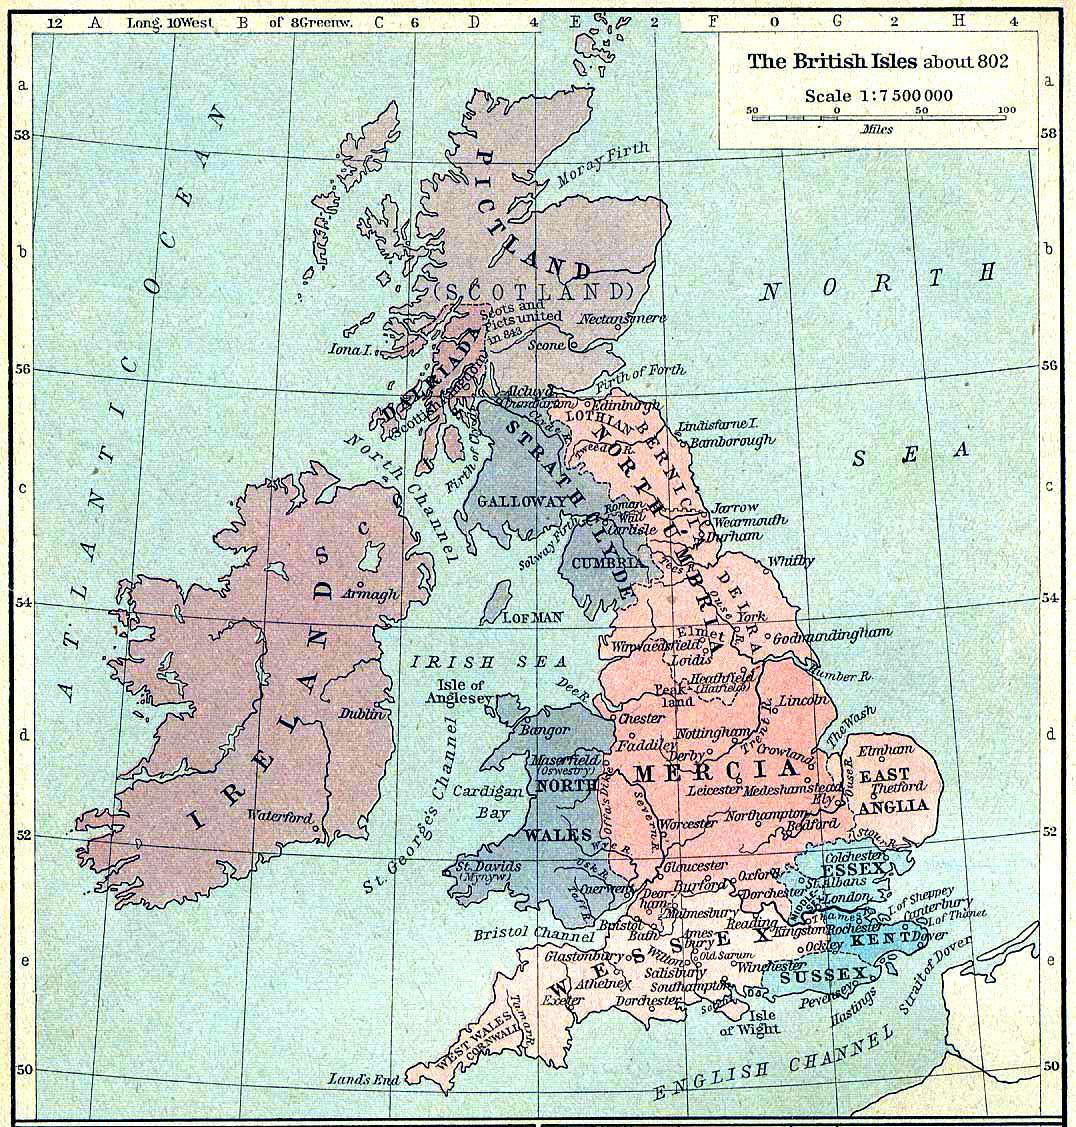 The British Isles, in the early 800s.